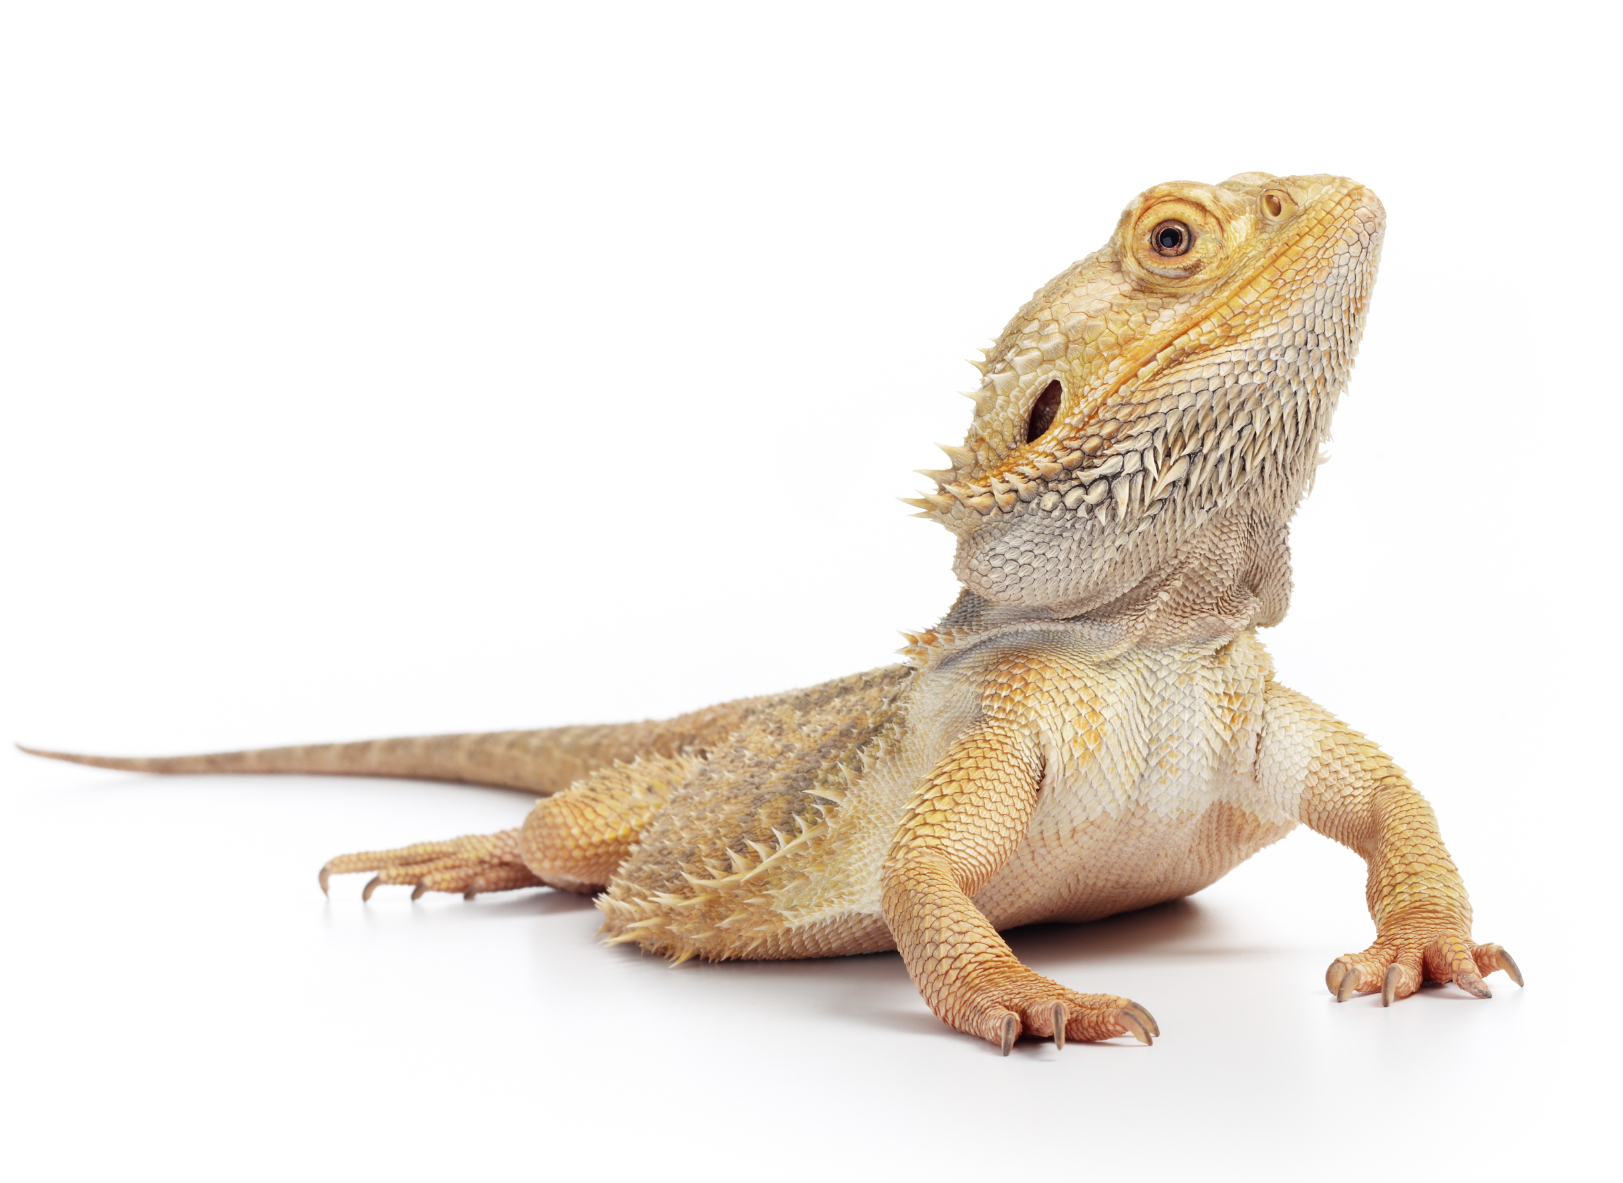 Your Bearded Dragon Has Unique Requirements To Stay Healthy And Hy The Following Can Help You Provide Pet With A Proper Hospitable Home